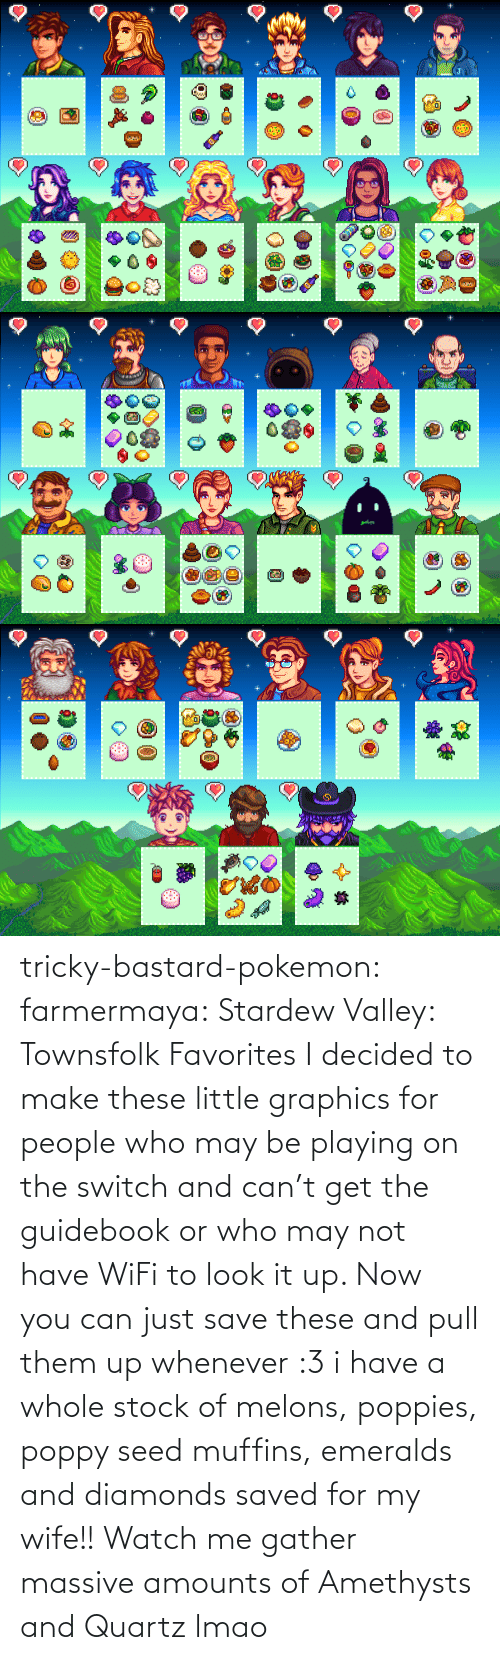 playing: tricky-bastard-pokemon:  farmermaya: Stardew Valley: Townsfolk Favorites  I decided to make these little graphics for people who may be playing on the switch and can't get the guidebook or who may not have WiFi to look it up. Now you can just save these and pull them up whenever :3   i have a whole stock of melons, poppies, poppy seed muffins, emeralds and diamonds saved for my wife!!    Watch me gather massive amounts of Amethysts and Quartz lmao